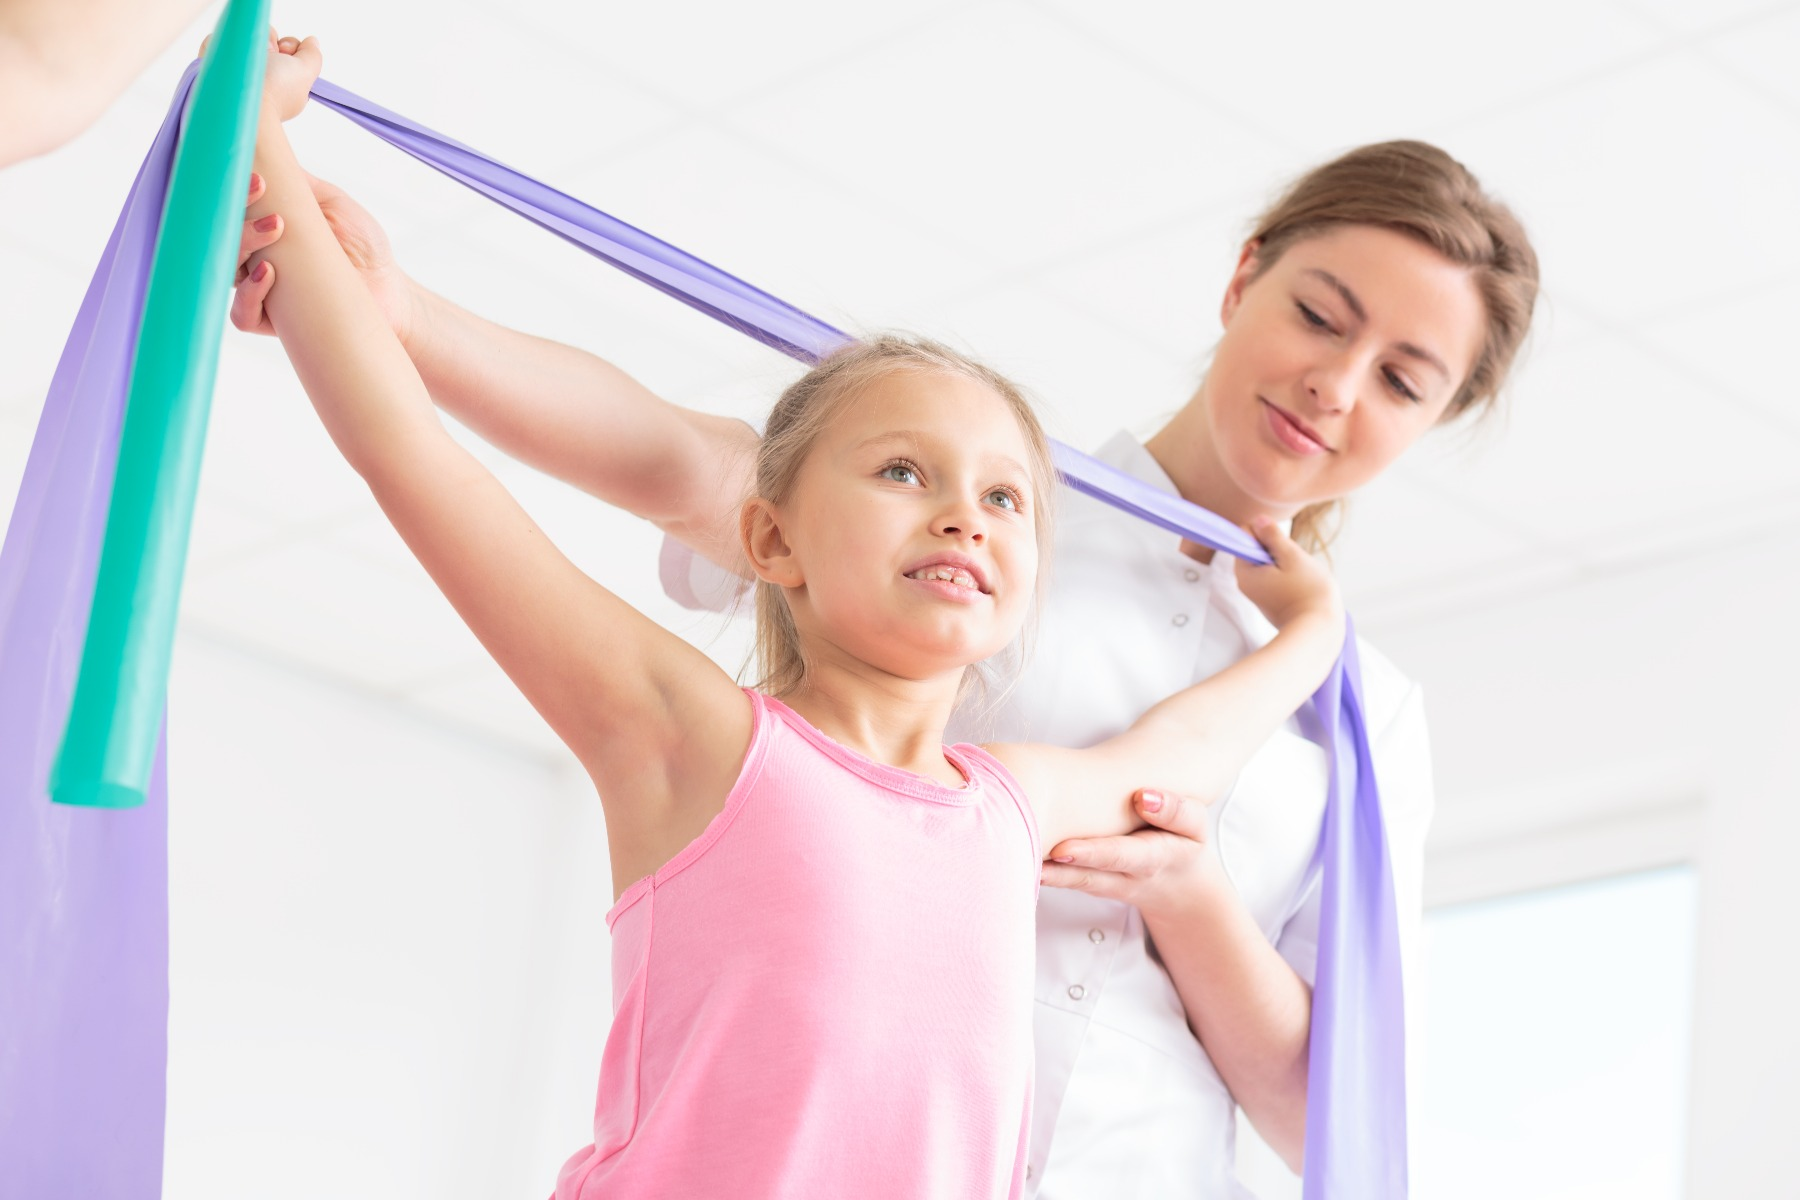 woman helping girl stretch with stretch bands